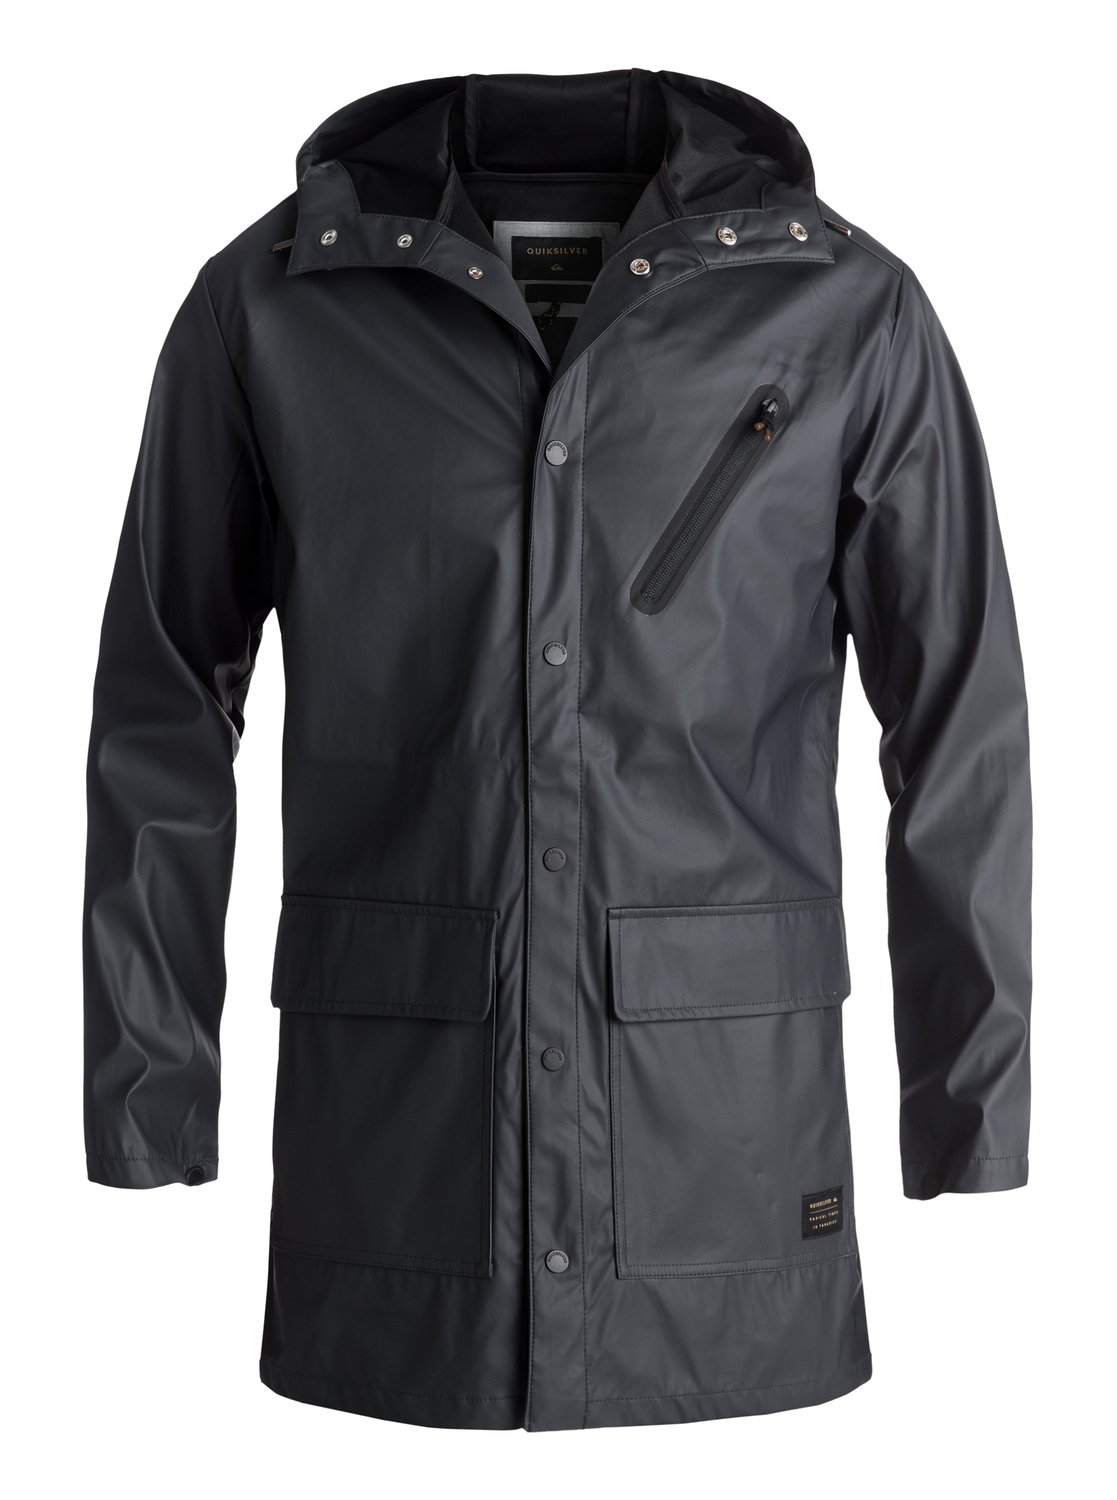 Quiksilver™ Travers Deep Long Rain Jacket EQYJK03309 | eBay